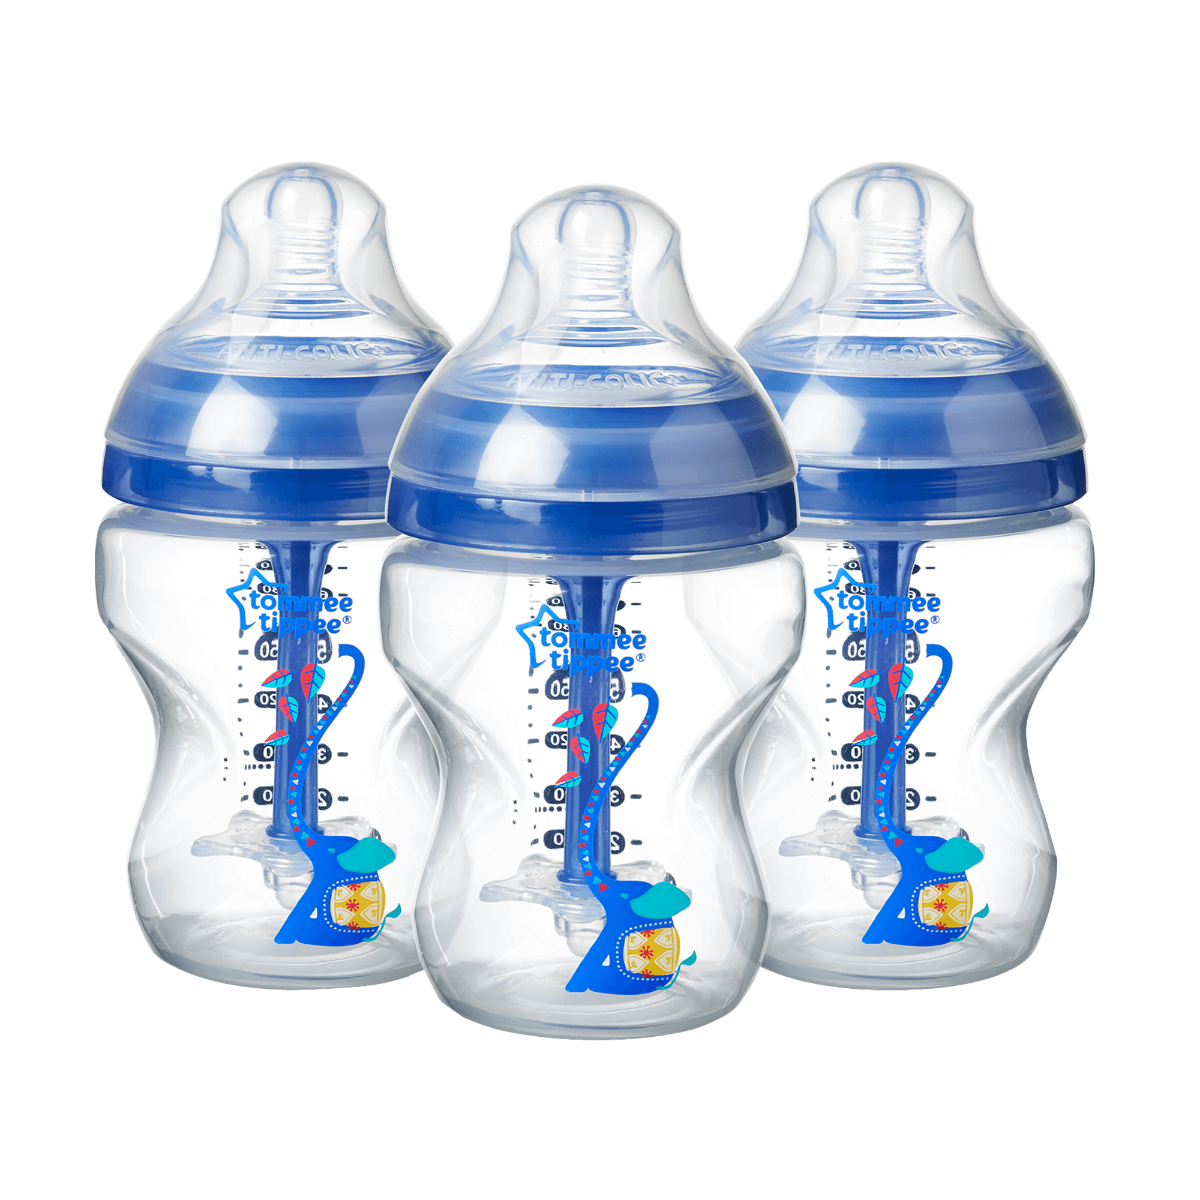 three-250ml-advanced-anti-colic-baby-bottles-blue-elephant-design